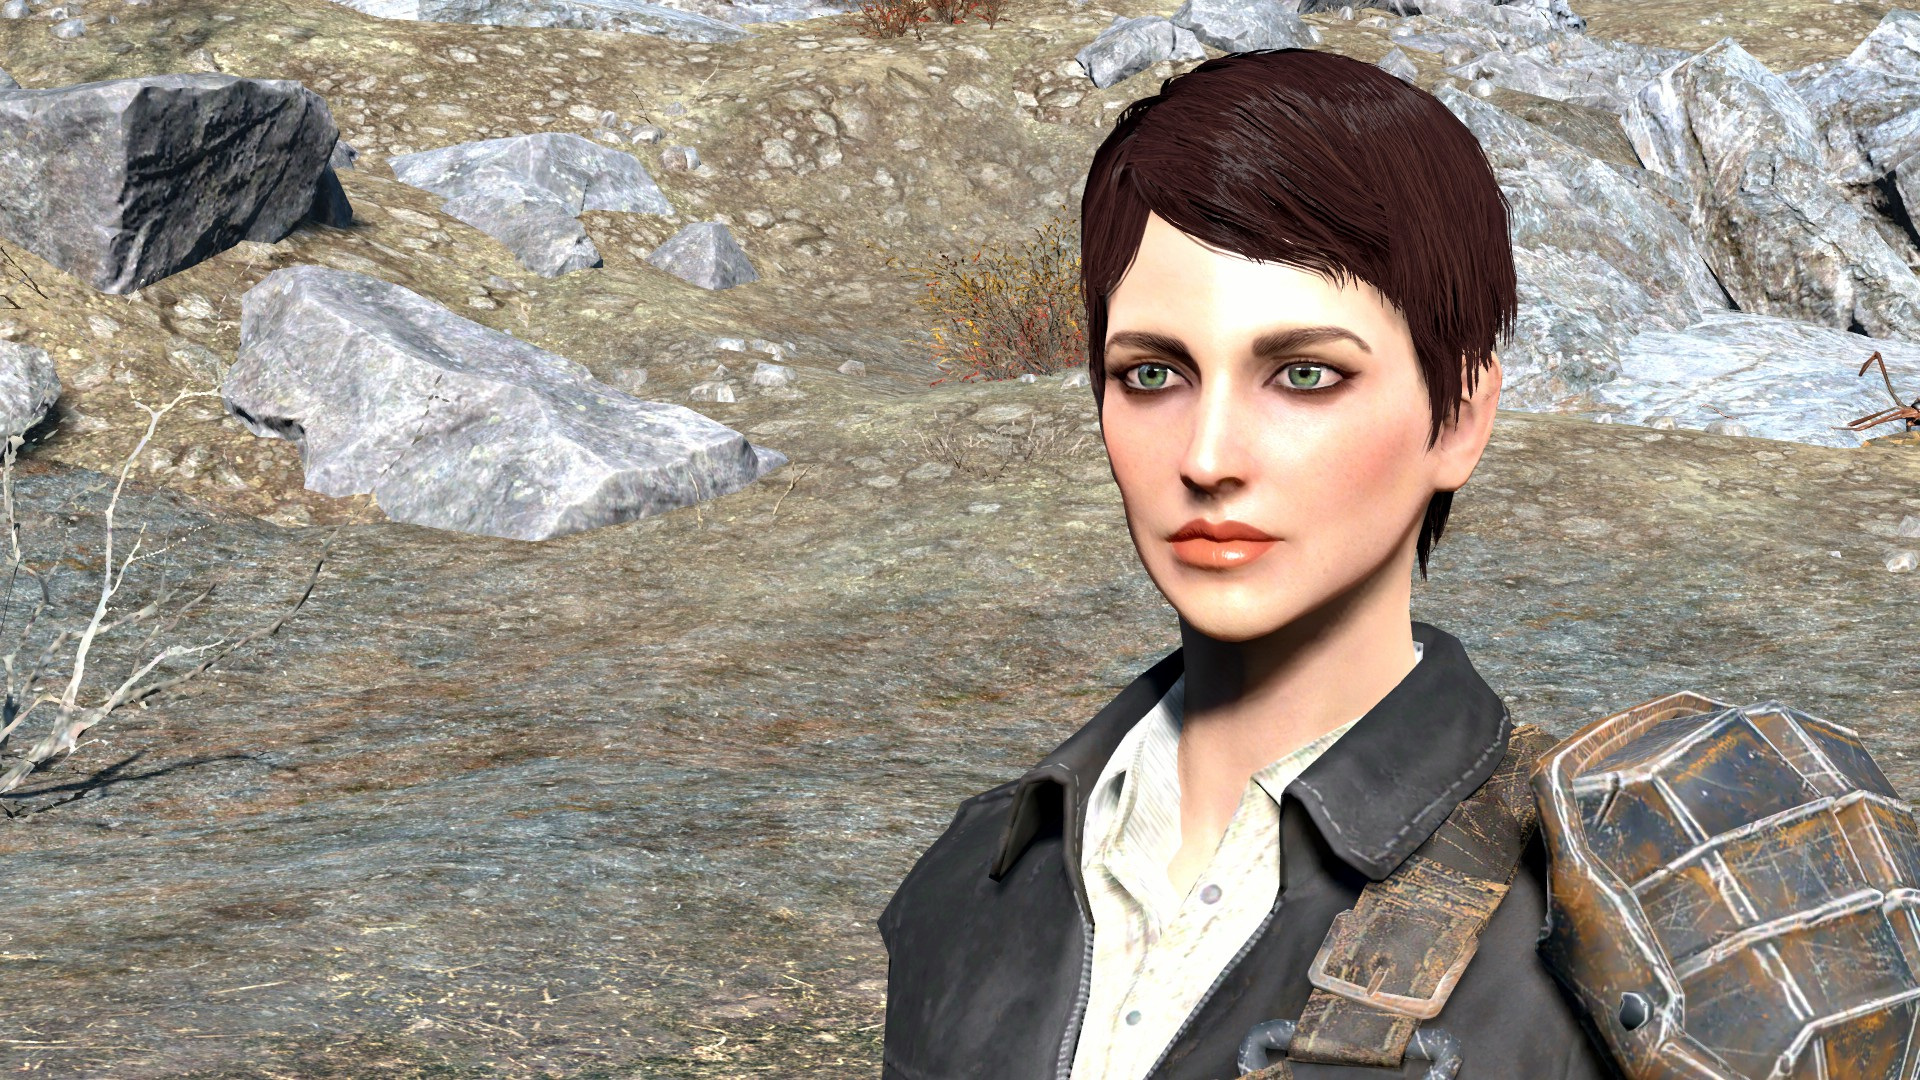 Help Curie Fallout 4